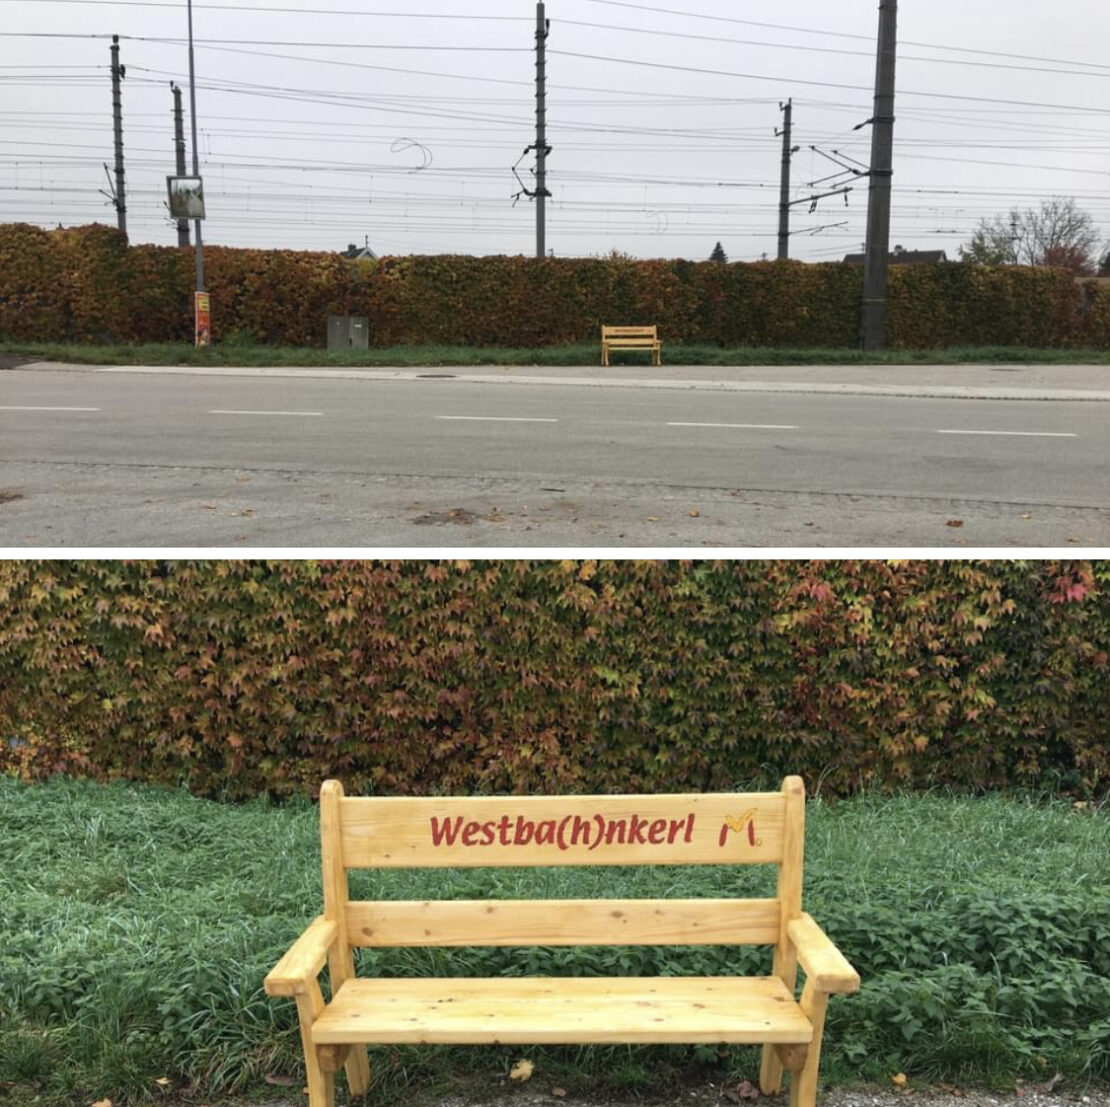 Neues Bankerl in Marchtrenk